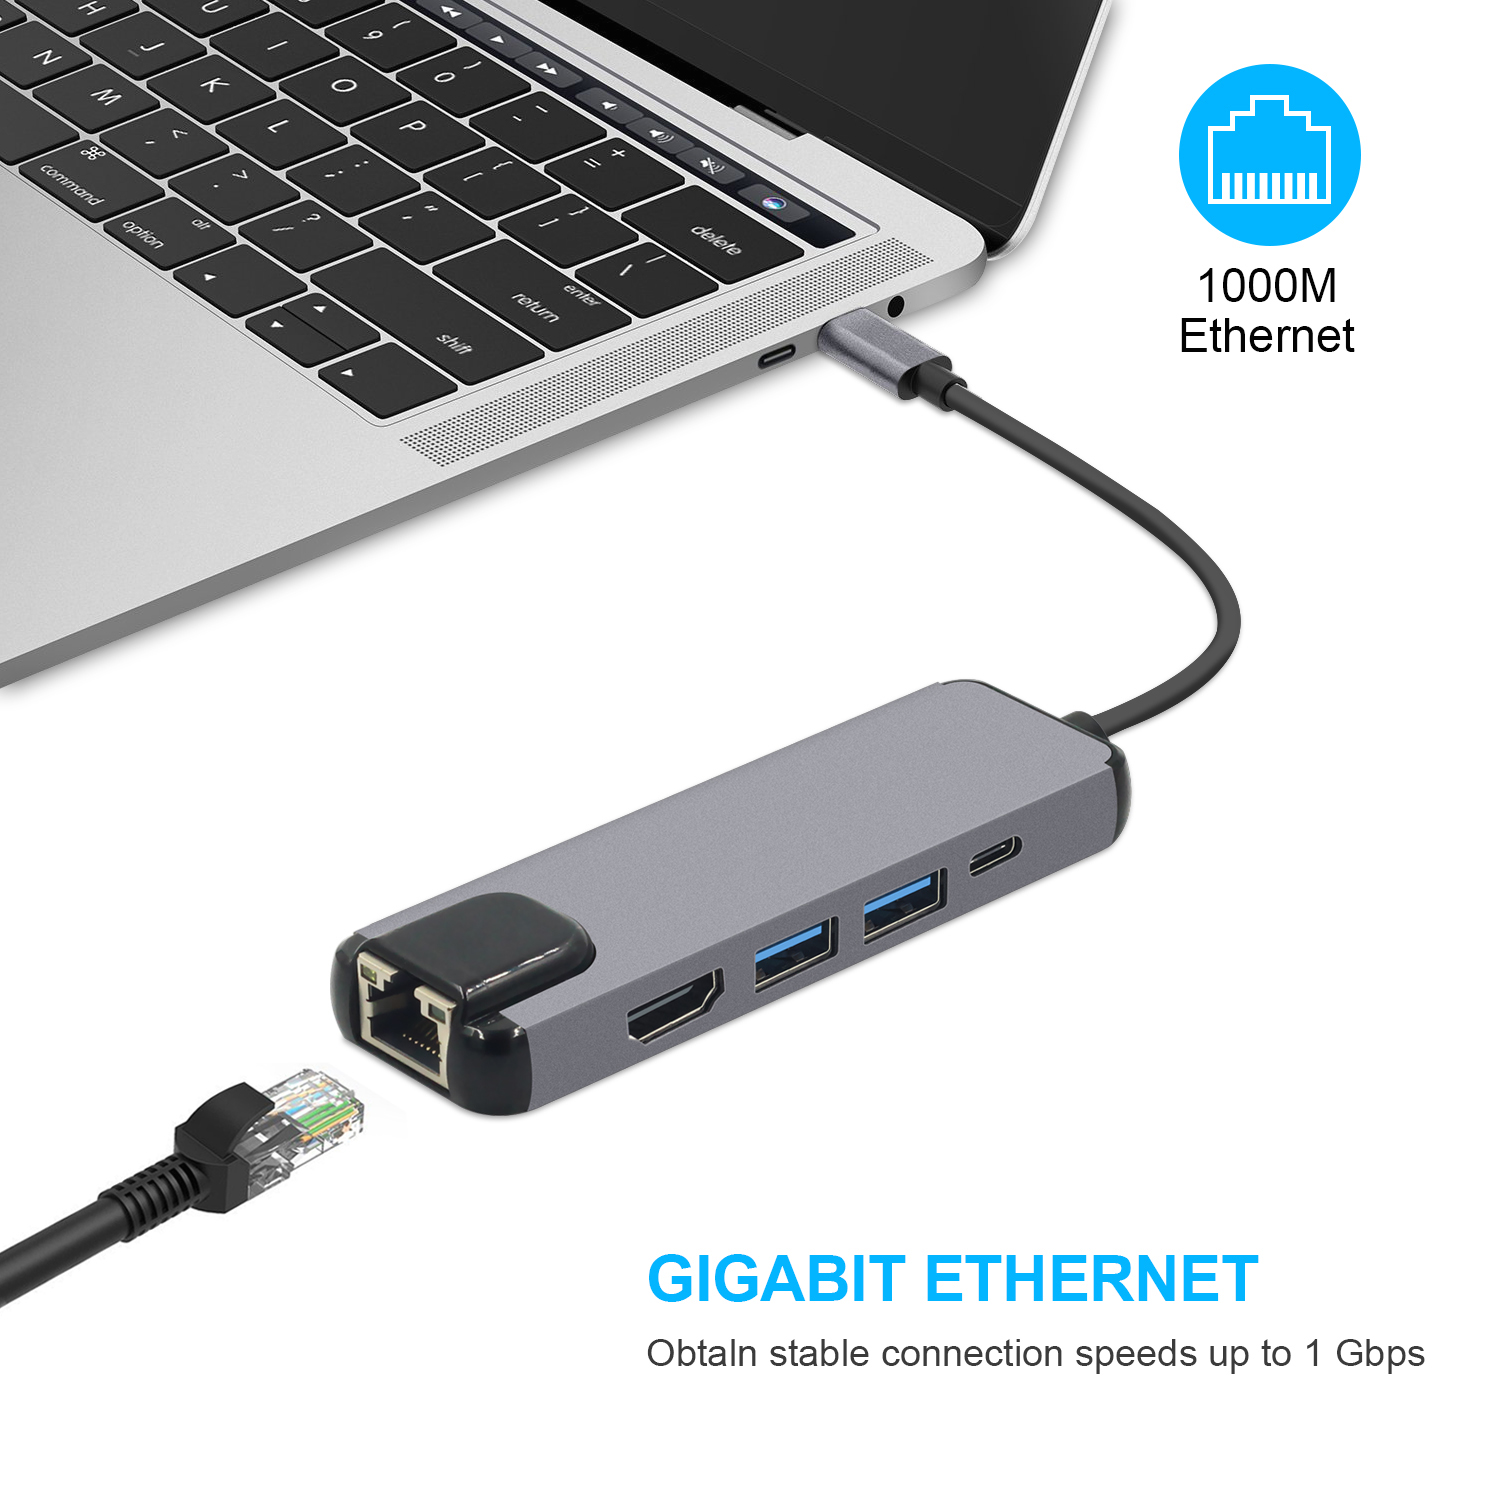 5 in 1 USB C Hub to HDMI Gigabit Ethernet Rj45 Lan Adapter for Macbook Pro iPad Pro 11 12.9 2018 Thunderbolt 3 Type c Hub